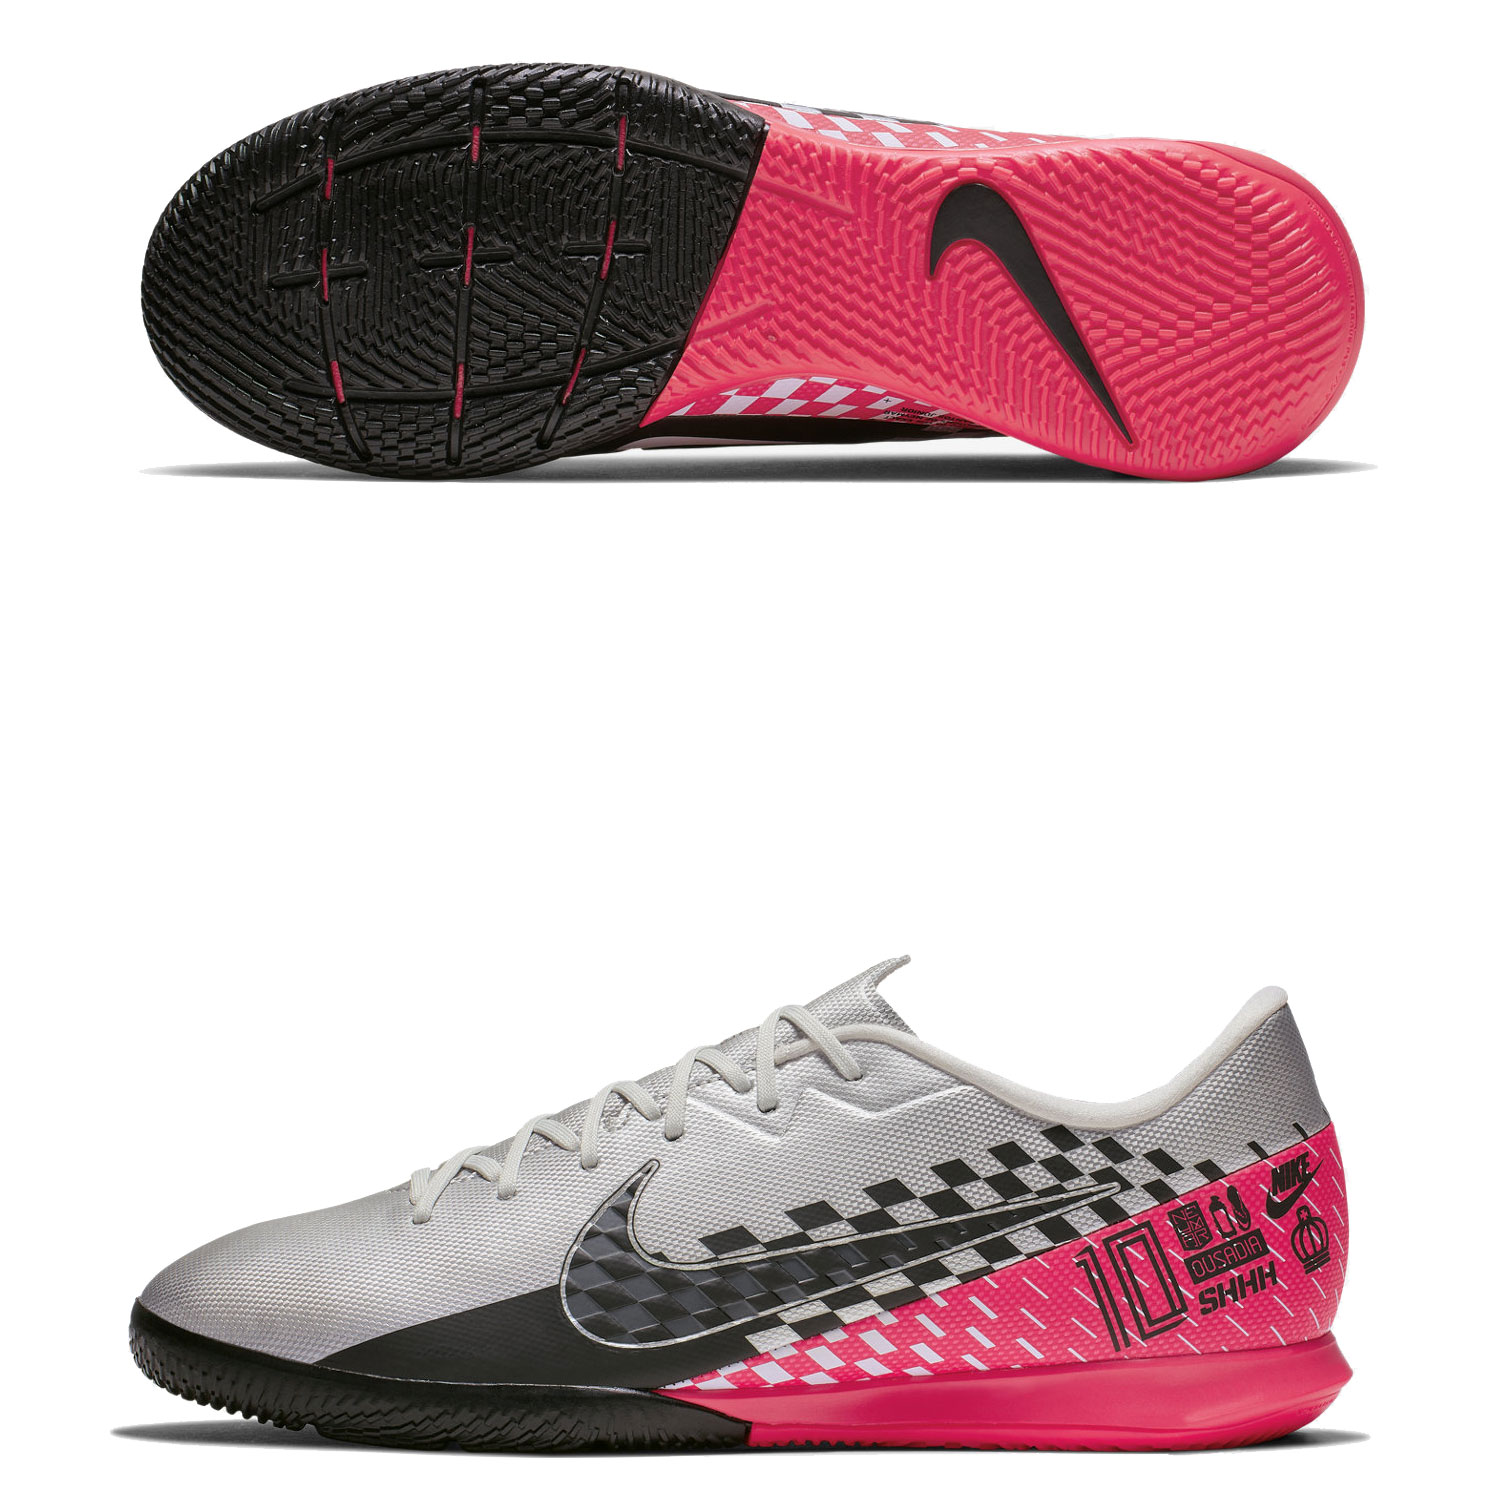 NIKE VAPOR XIII ACADEMY NJR IC AT7994-006